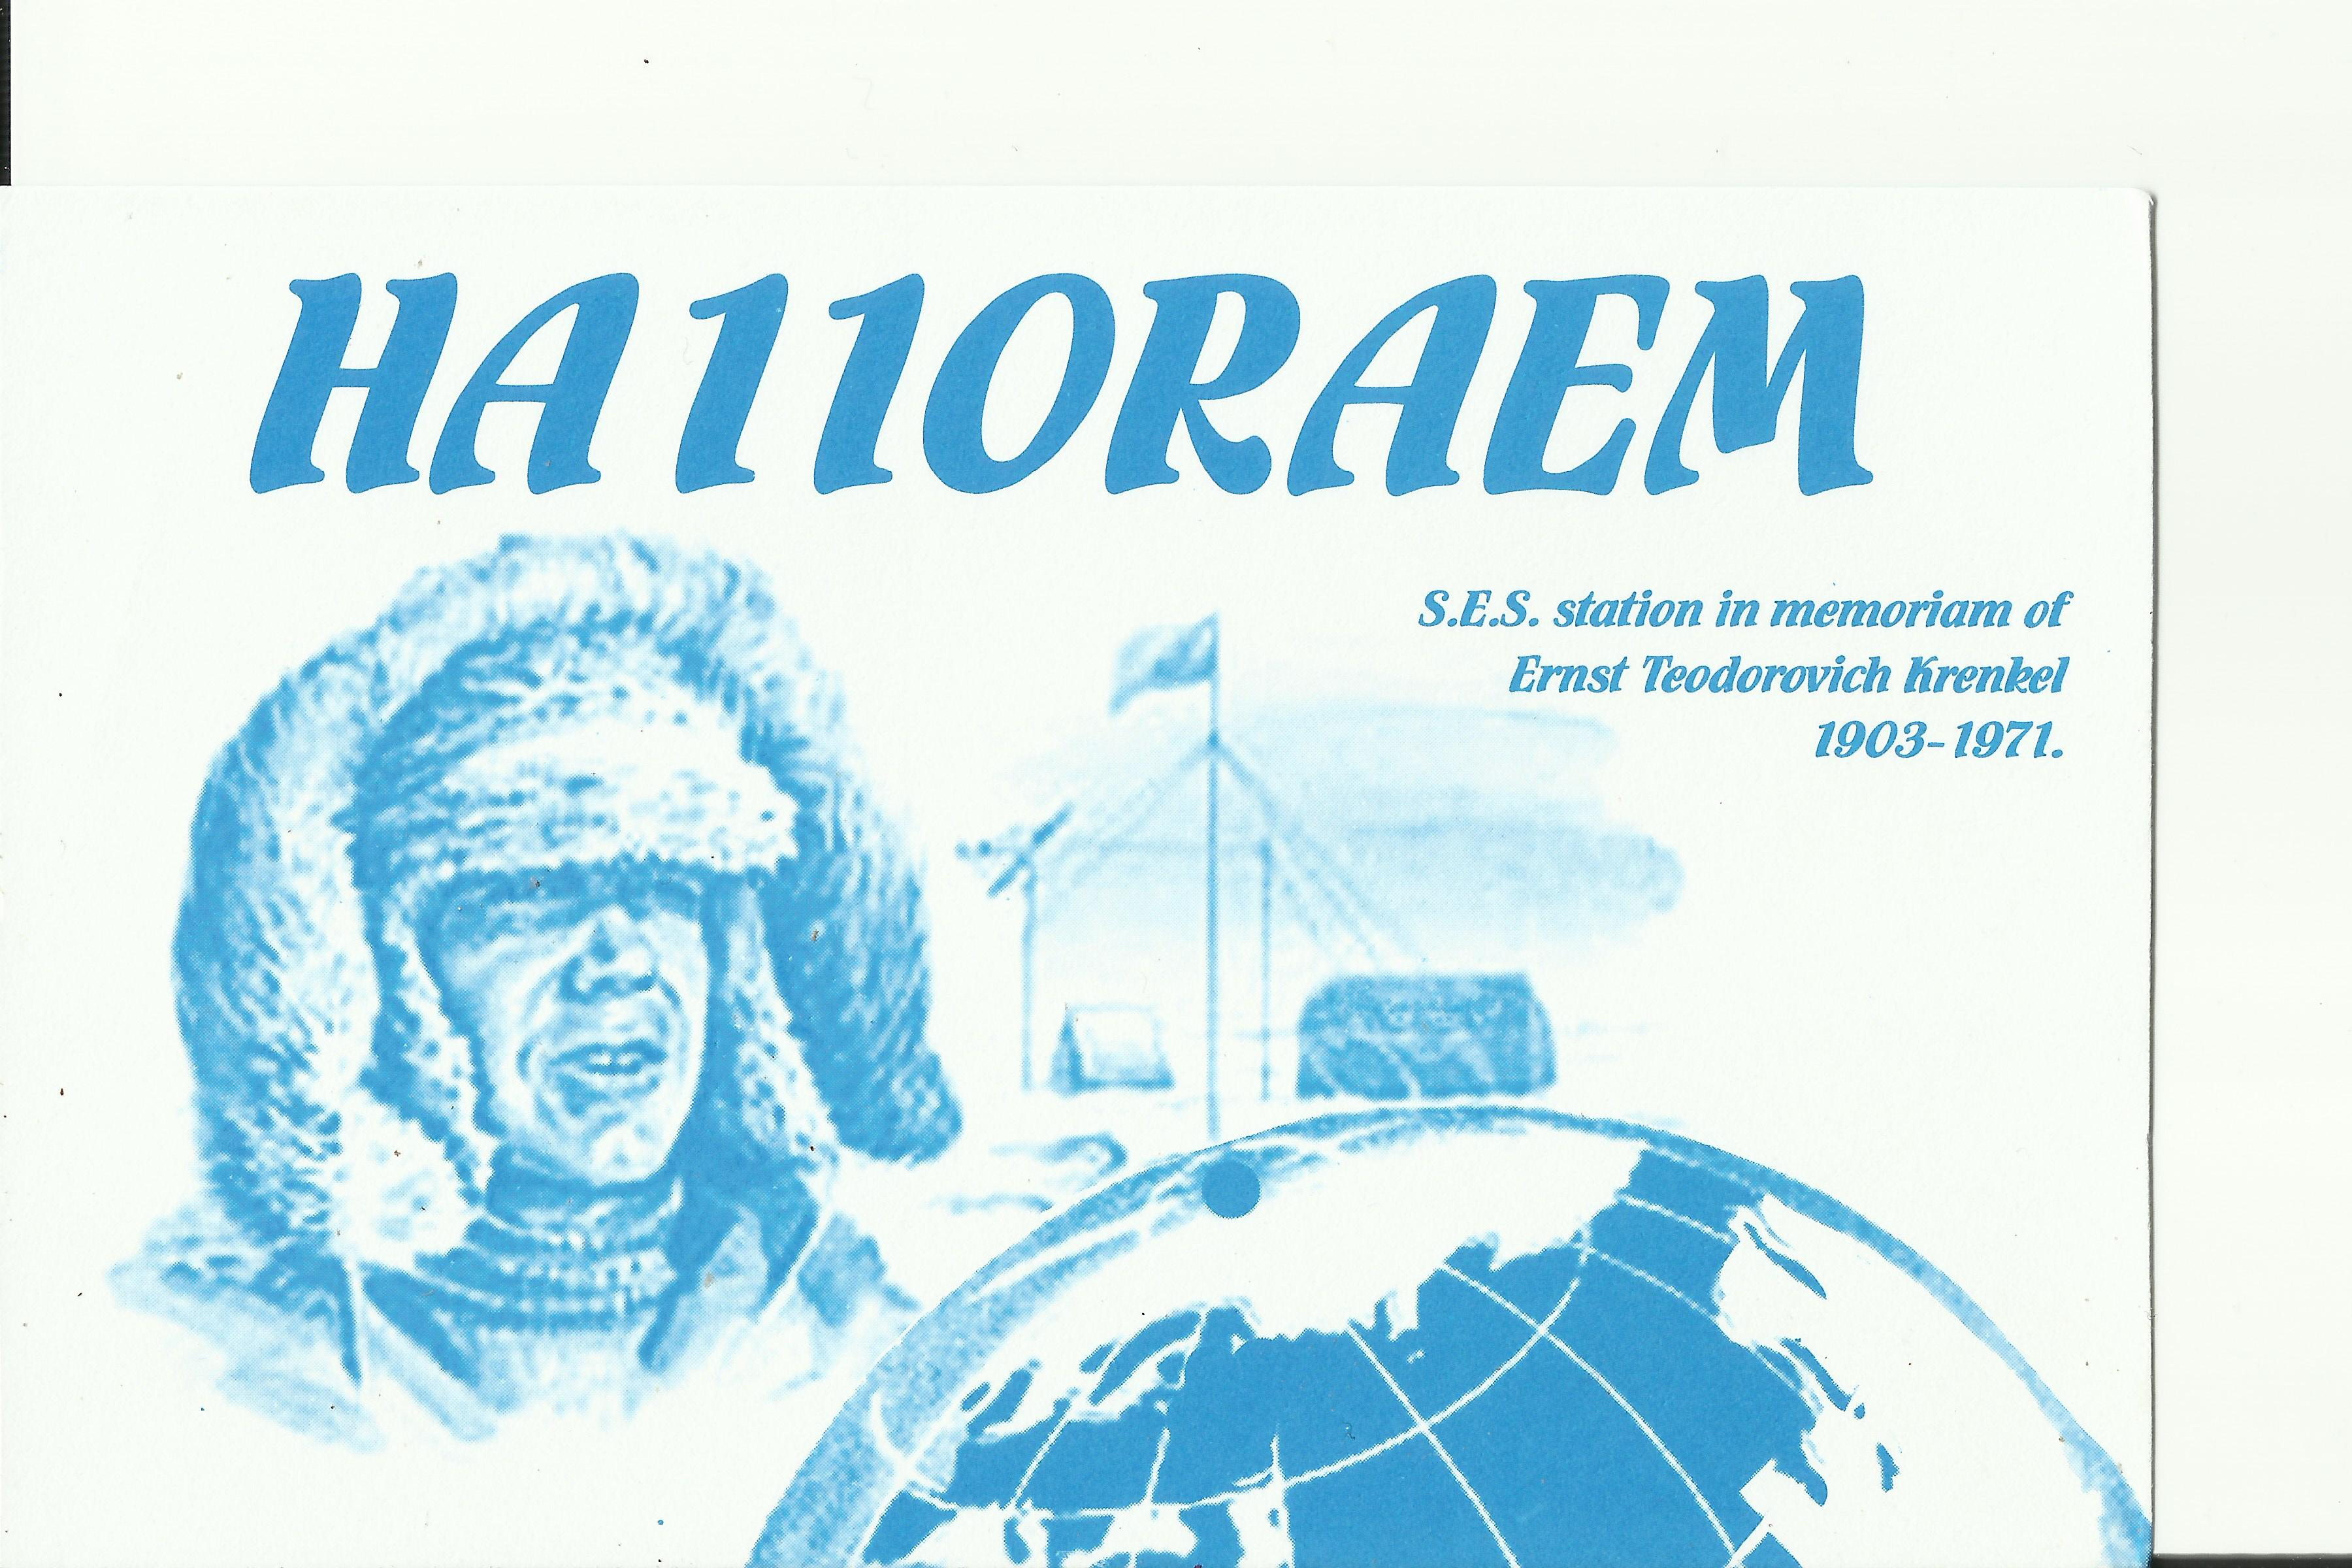 QSL image for HA110RAEM